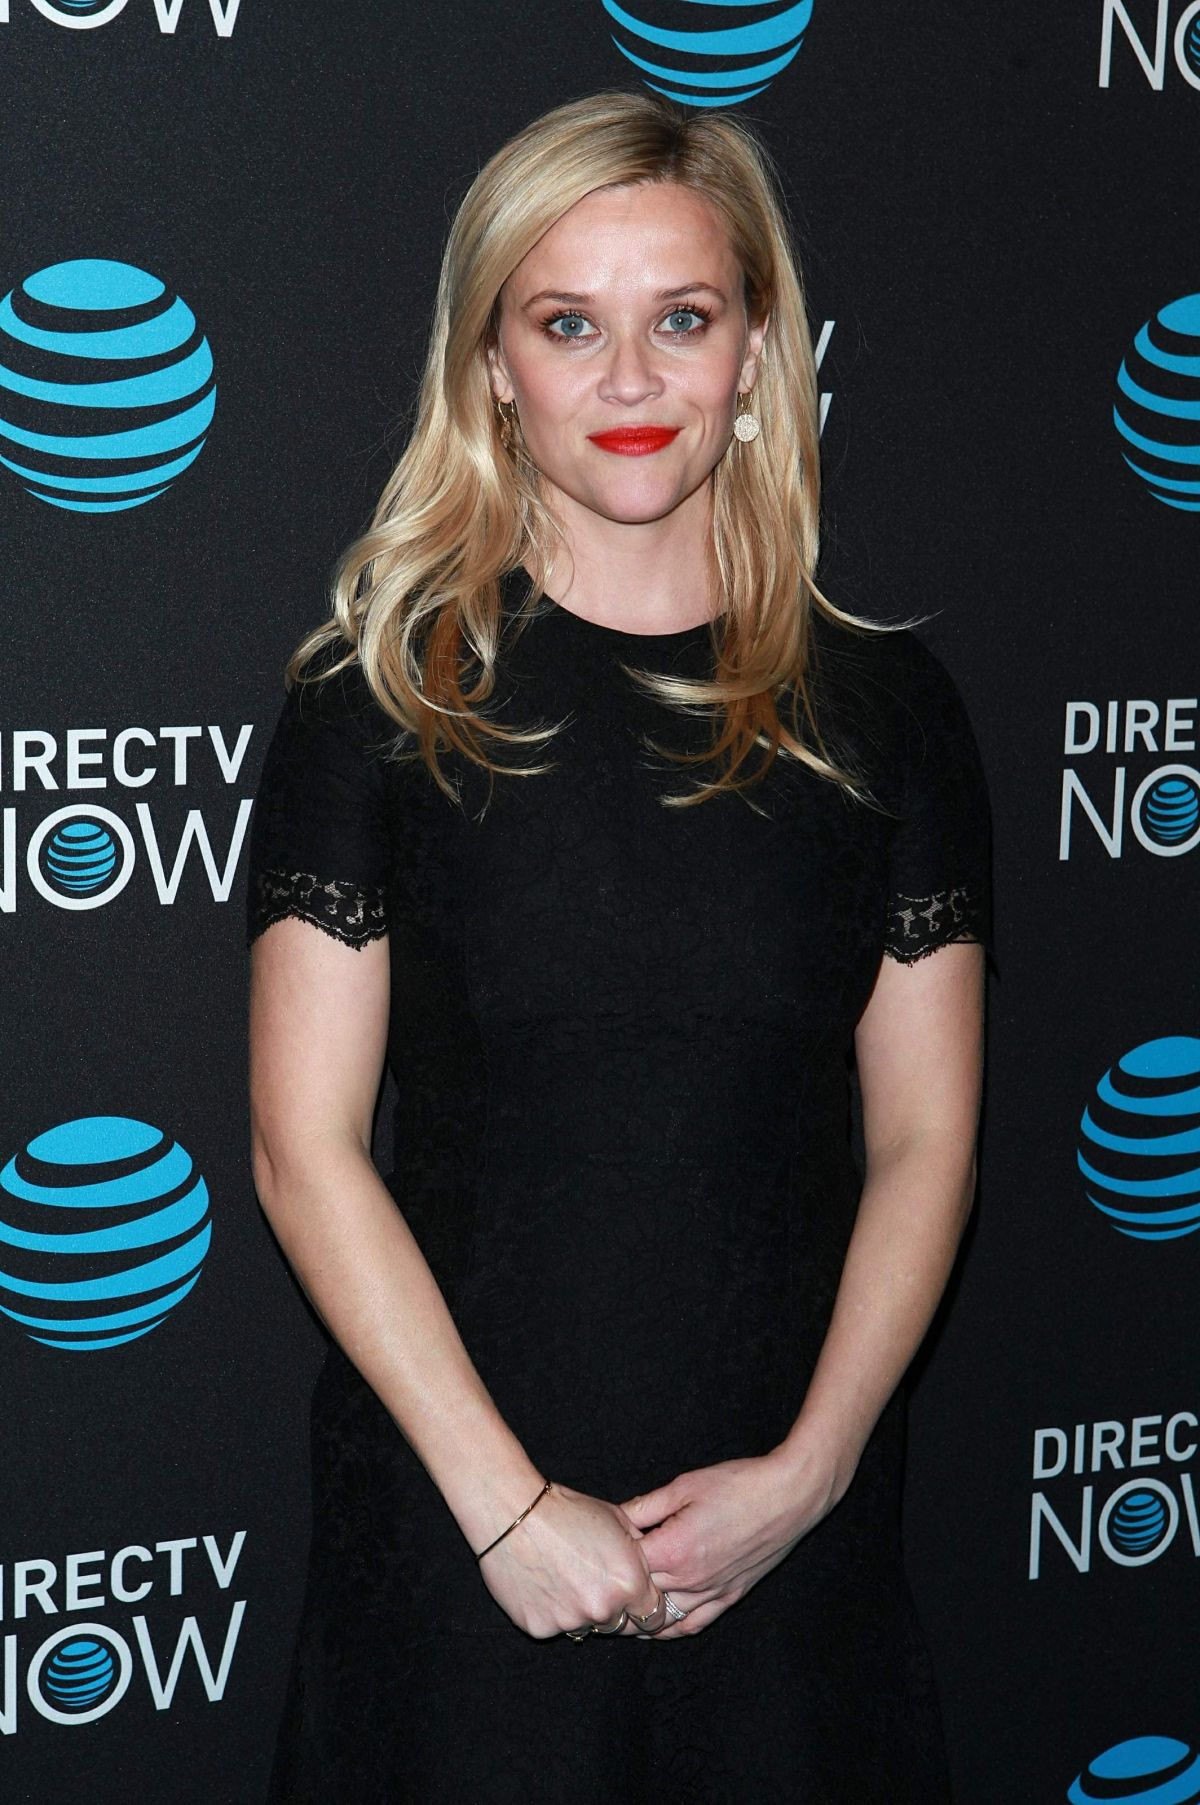 Reese Witherspoon At At T Celebrates The Launch Of Directv Now In Nyc Celebzz Celebzz